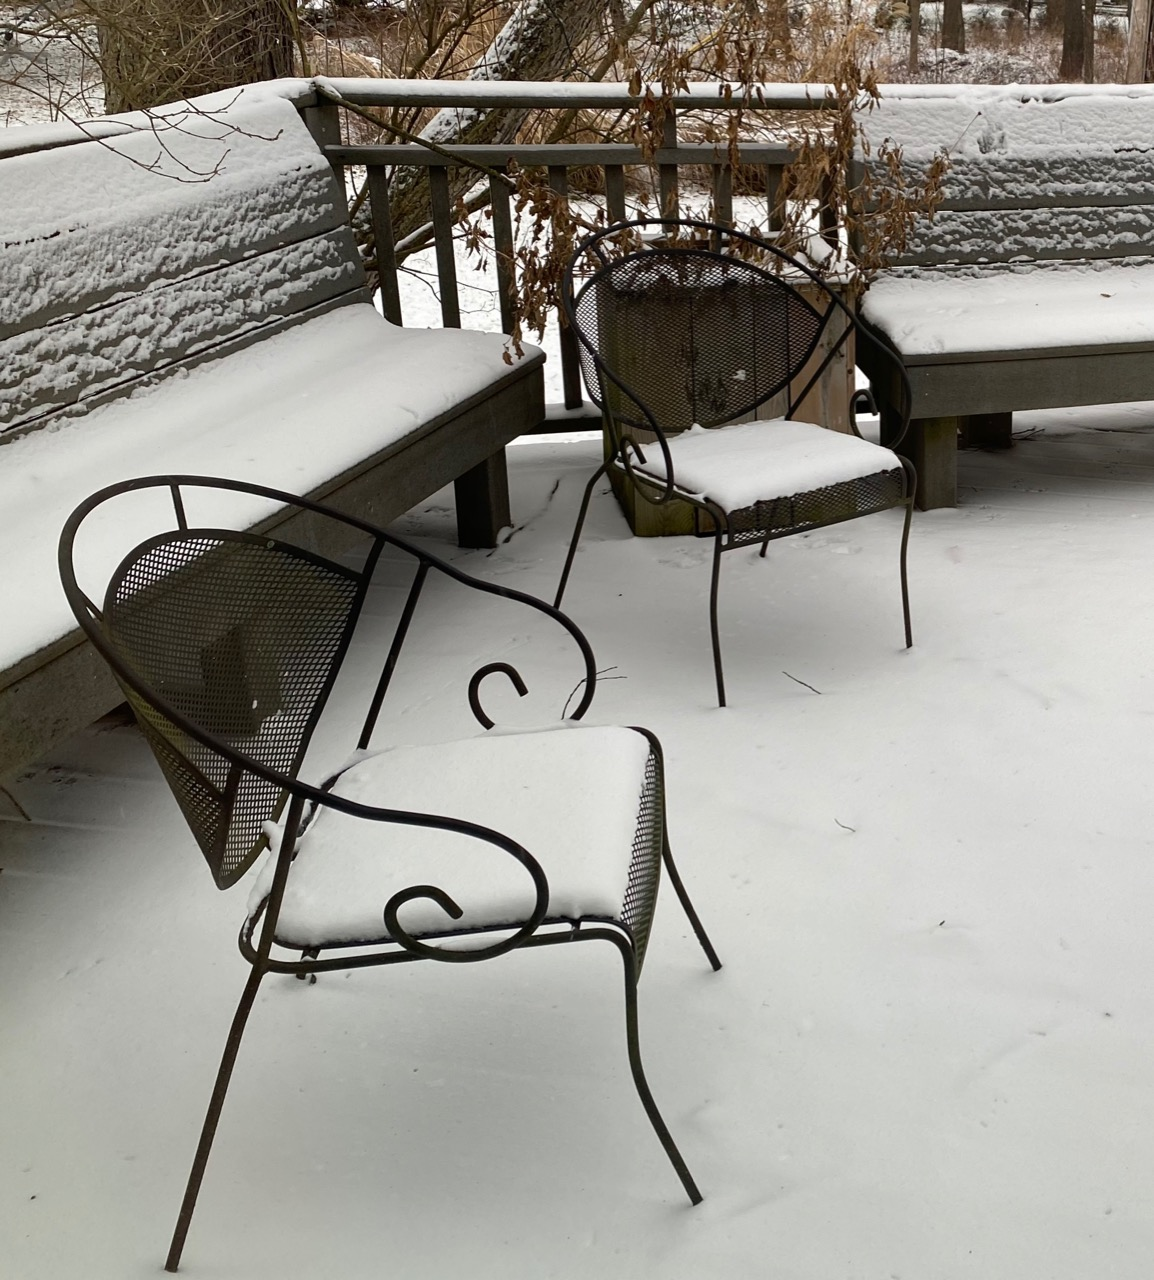 winter chairs